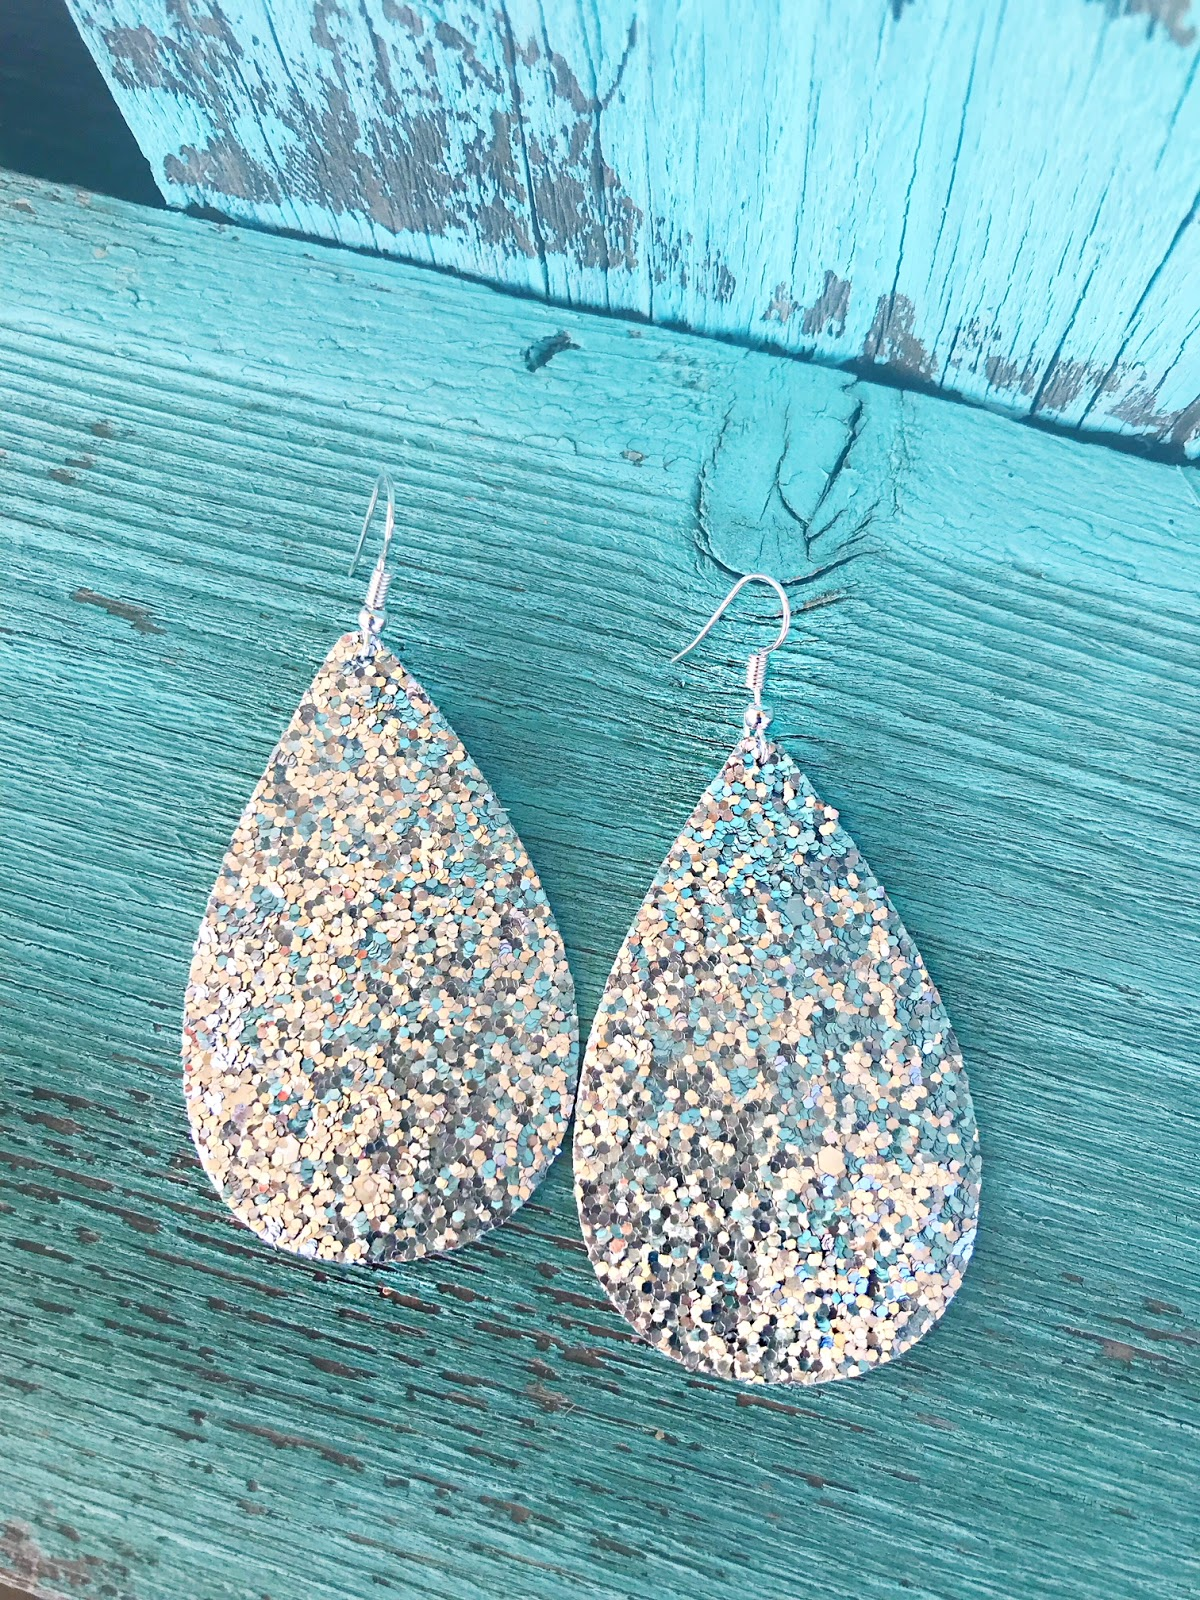 DIY Faux Leather Earrings - Hall Around Texas